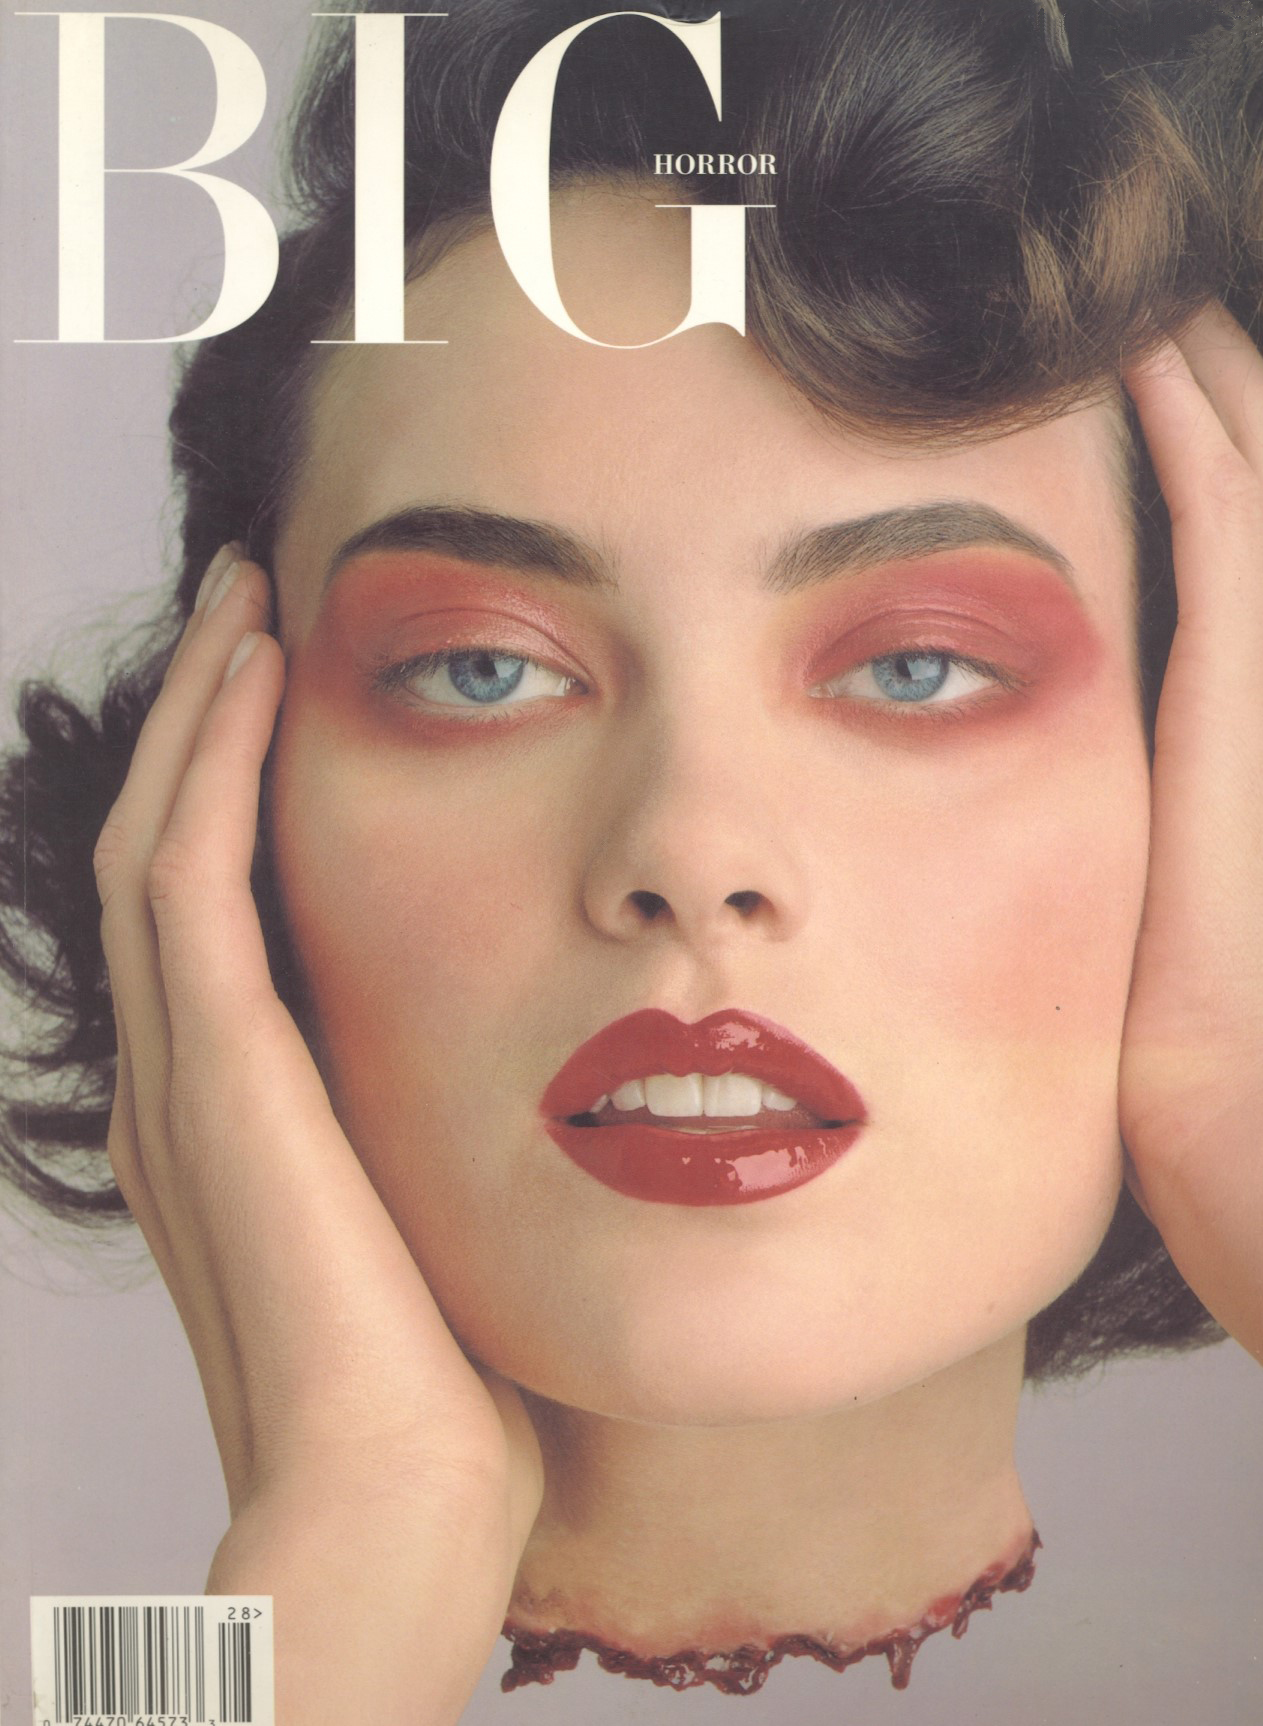 shalom harlow photography phil poynter big horror issue 28